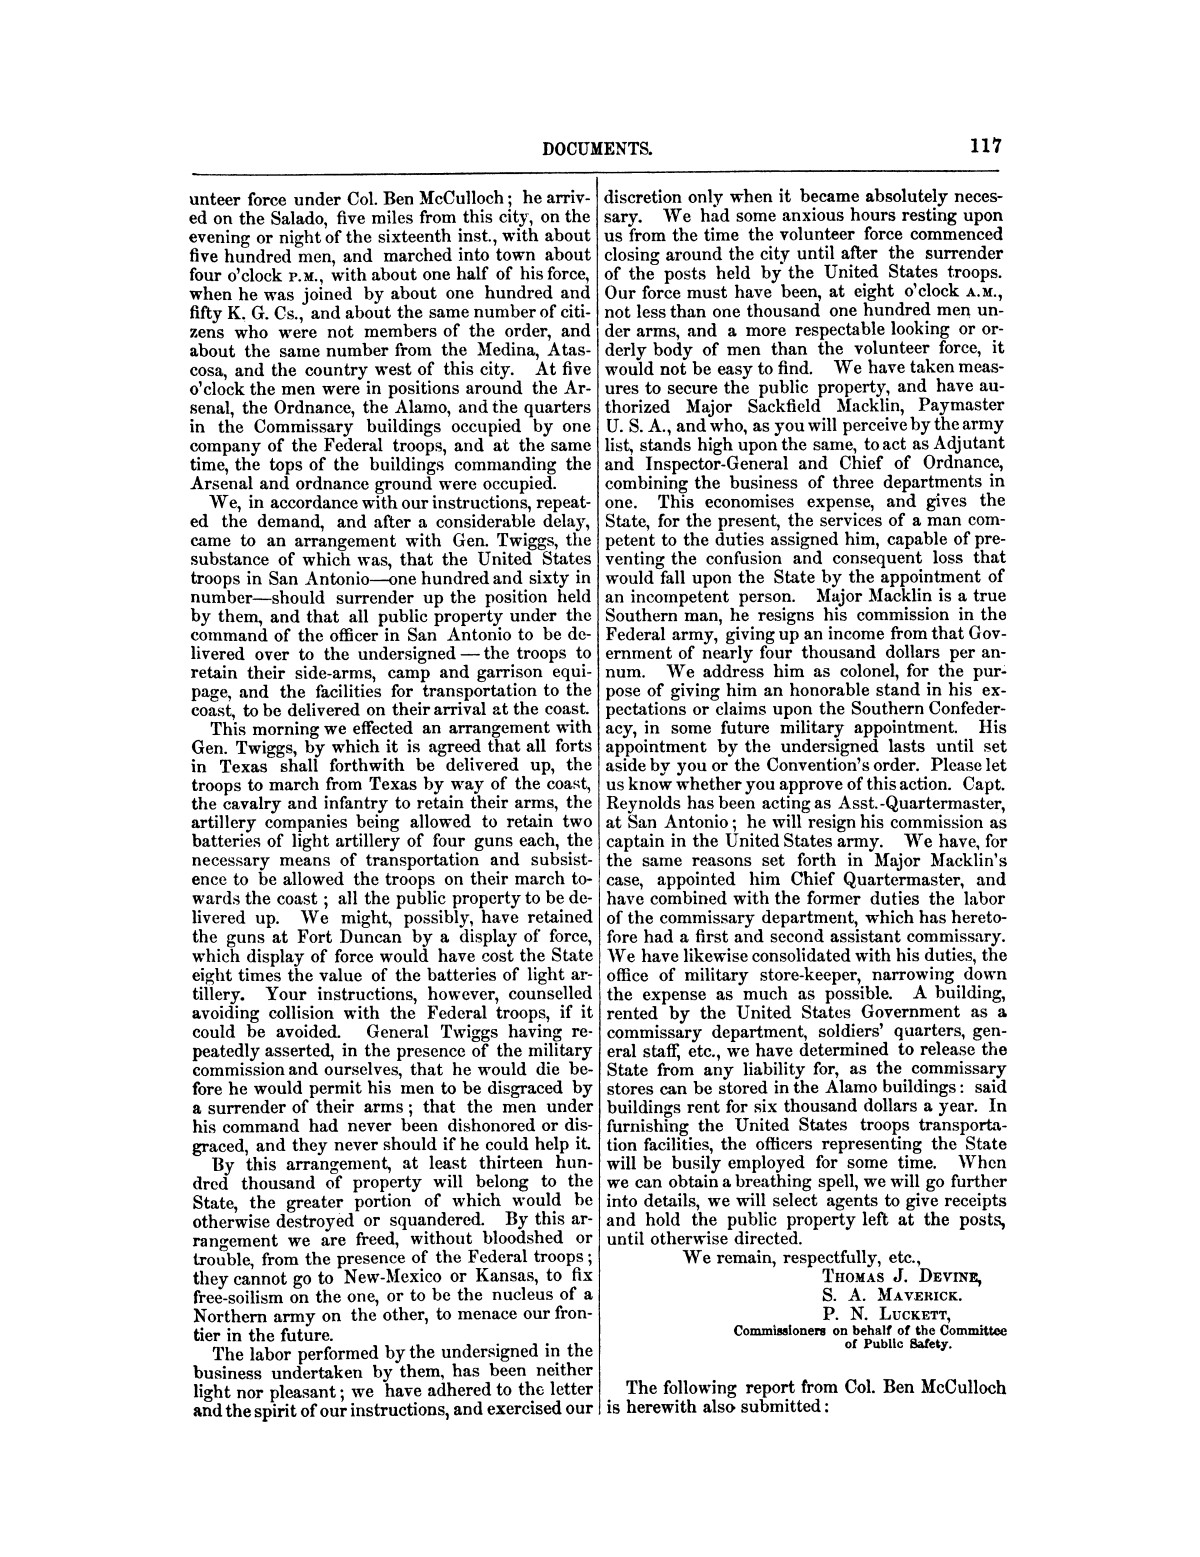 The treachery in Texas, the secession of Texas, and the arrest of the United States officers and soldiers serving in Texas. Read before the New-York Historical Society, June 25, 1861. By Major J. T. Sprague, U. S. A.                                                                                                      [Sequence #]: 11 of 36